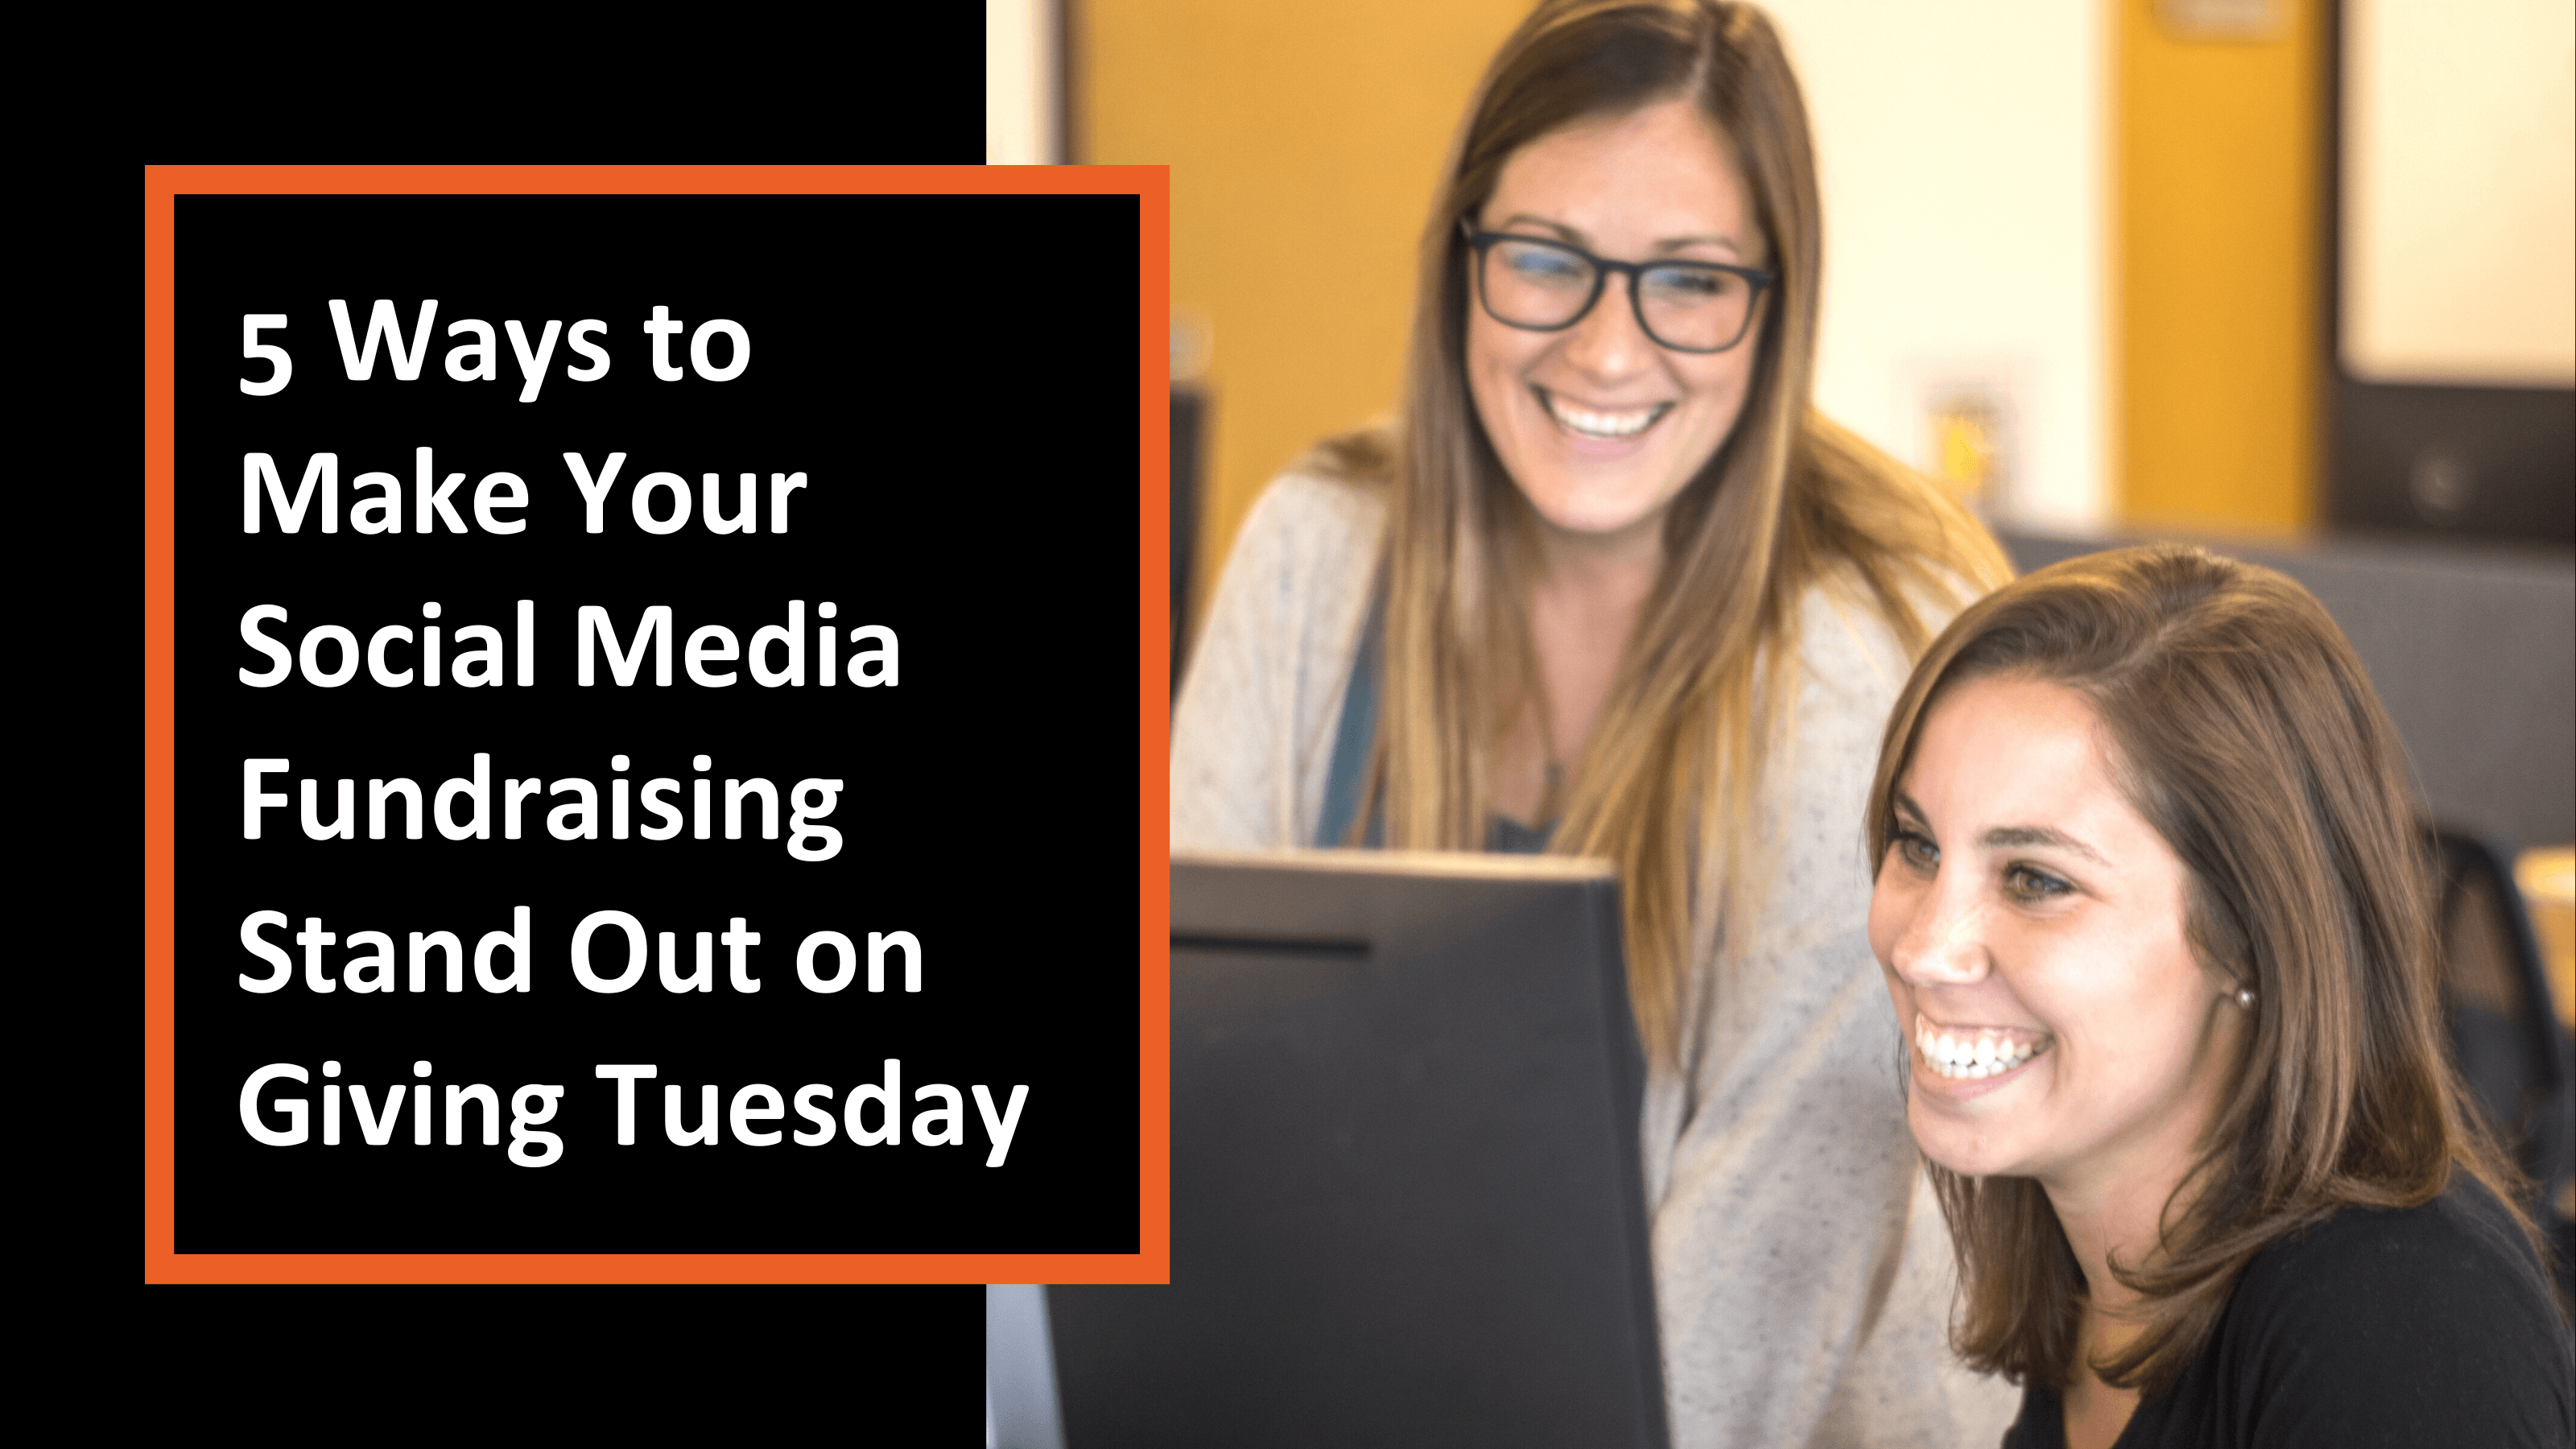 5 Ways to Make Your Social Media Fundraising Stand Out on Giving Tuesday